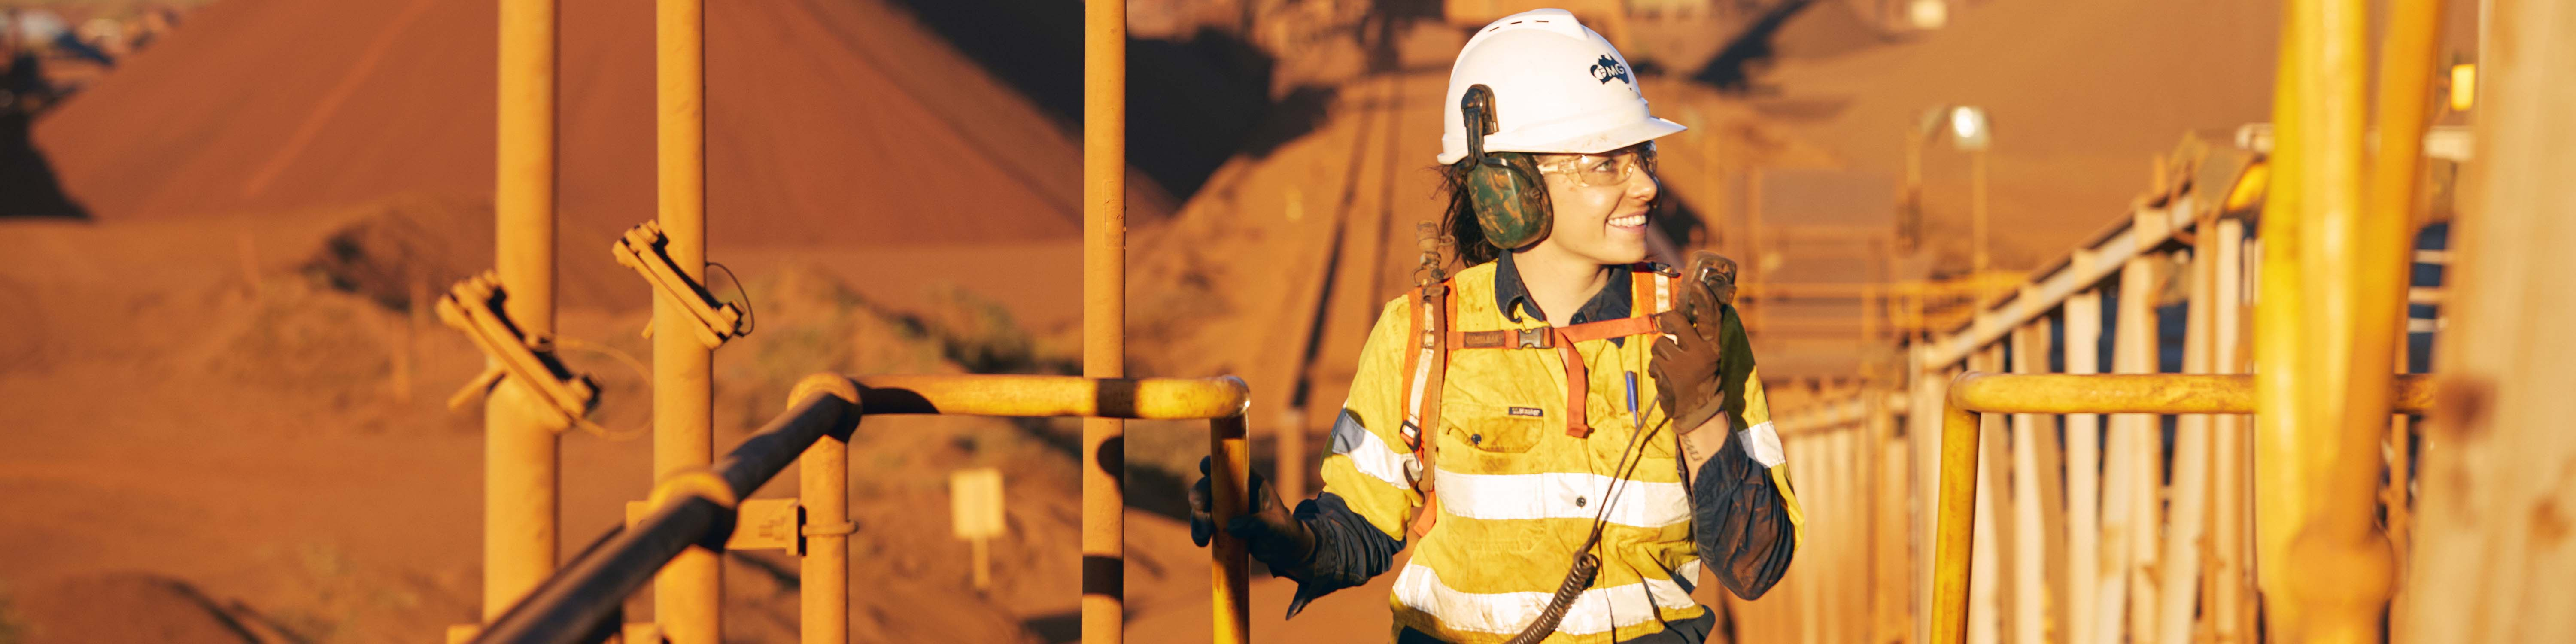 Jobs at Fortescue | Fortescue Metals Group Ltd